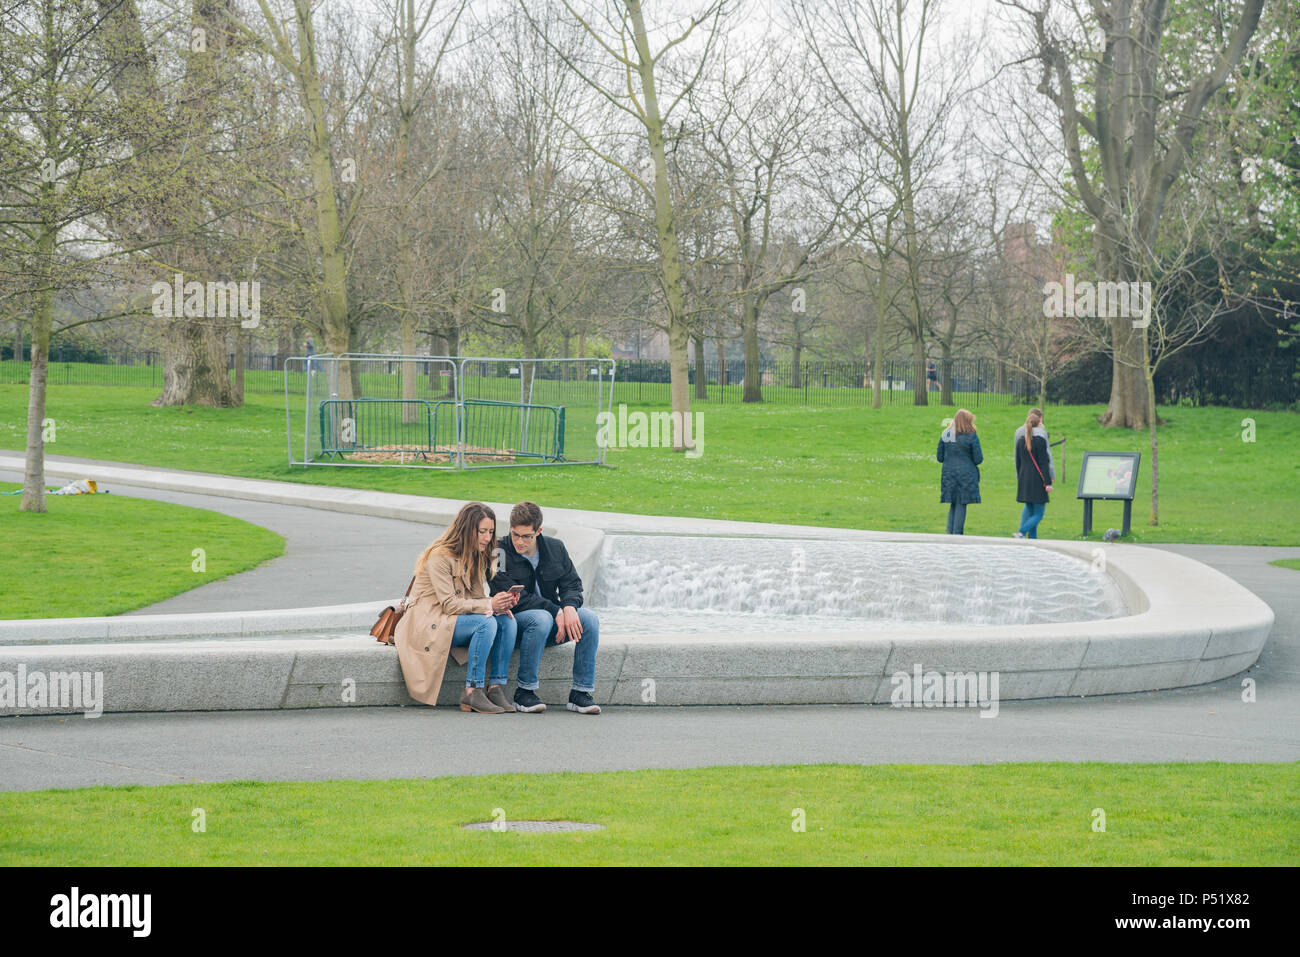 London, APR 15: Princess Diana Memorial Fountain in Hyde Park on APR 15, 2018 at London, United Kingdom - Stock Image